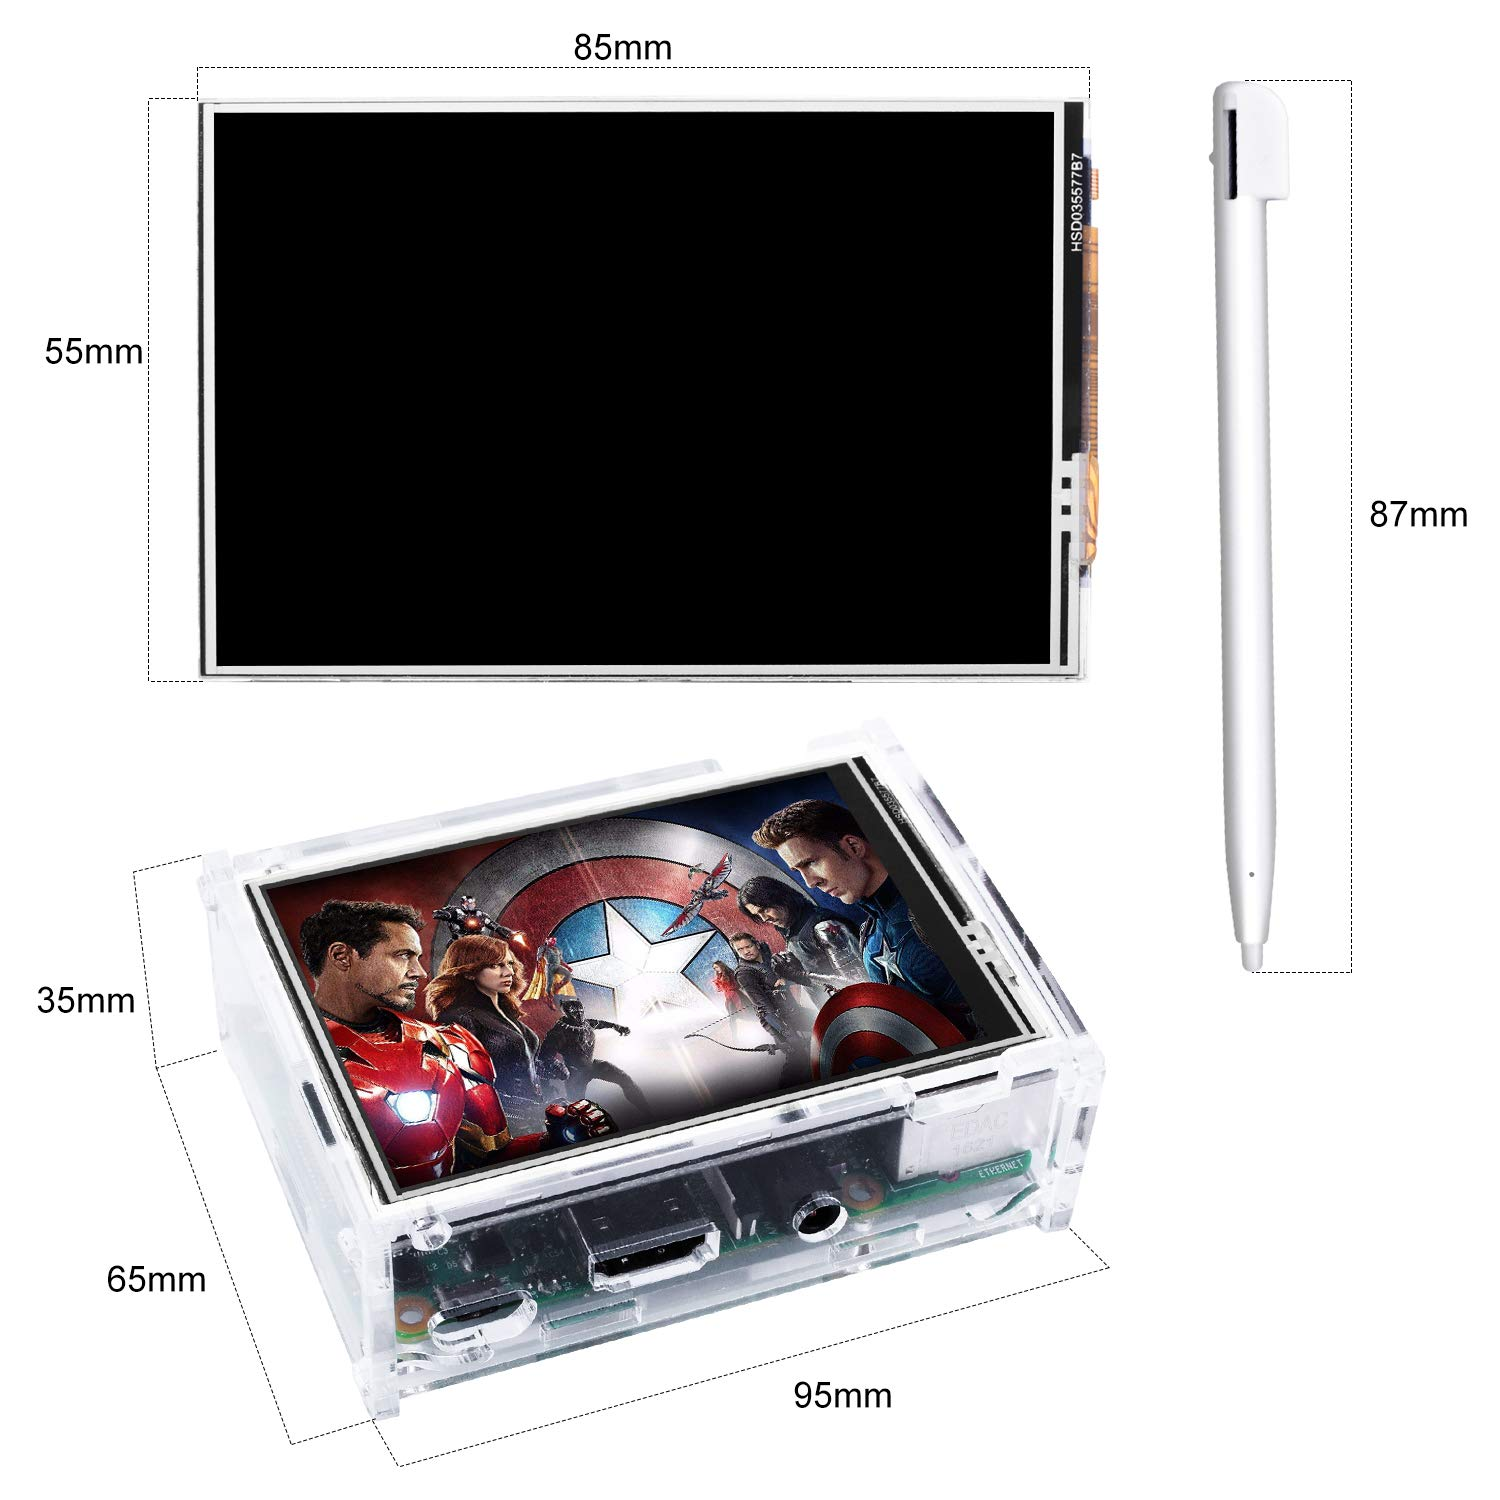 Kuman 3.5 Inch Touch Screen TFT Monitor LCD Dsiplay with Protective Case 320x480 Resolution TFT LCD Display for Raspberry Pi 3B+,3B,2B,B Pantalla T/áctil SC107